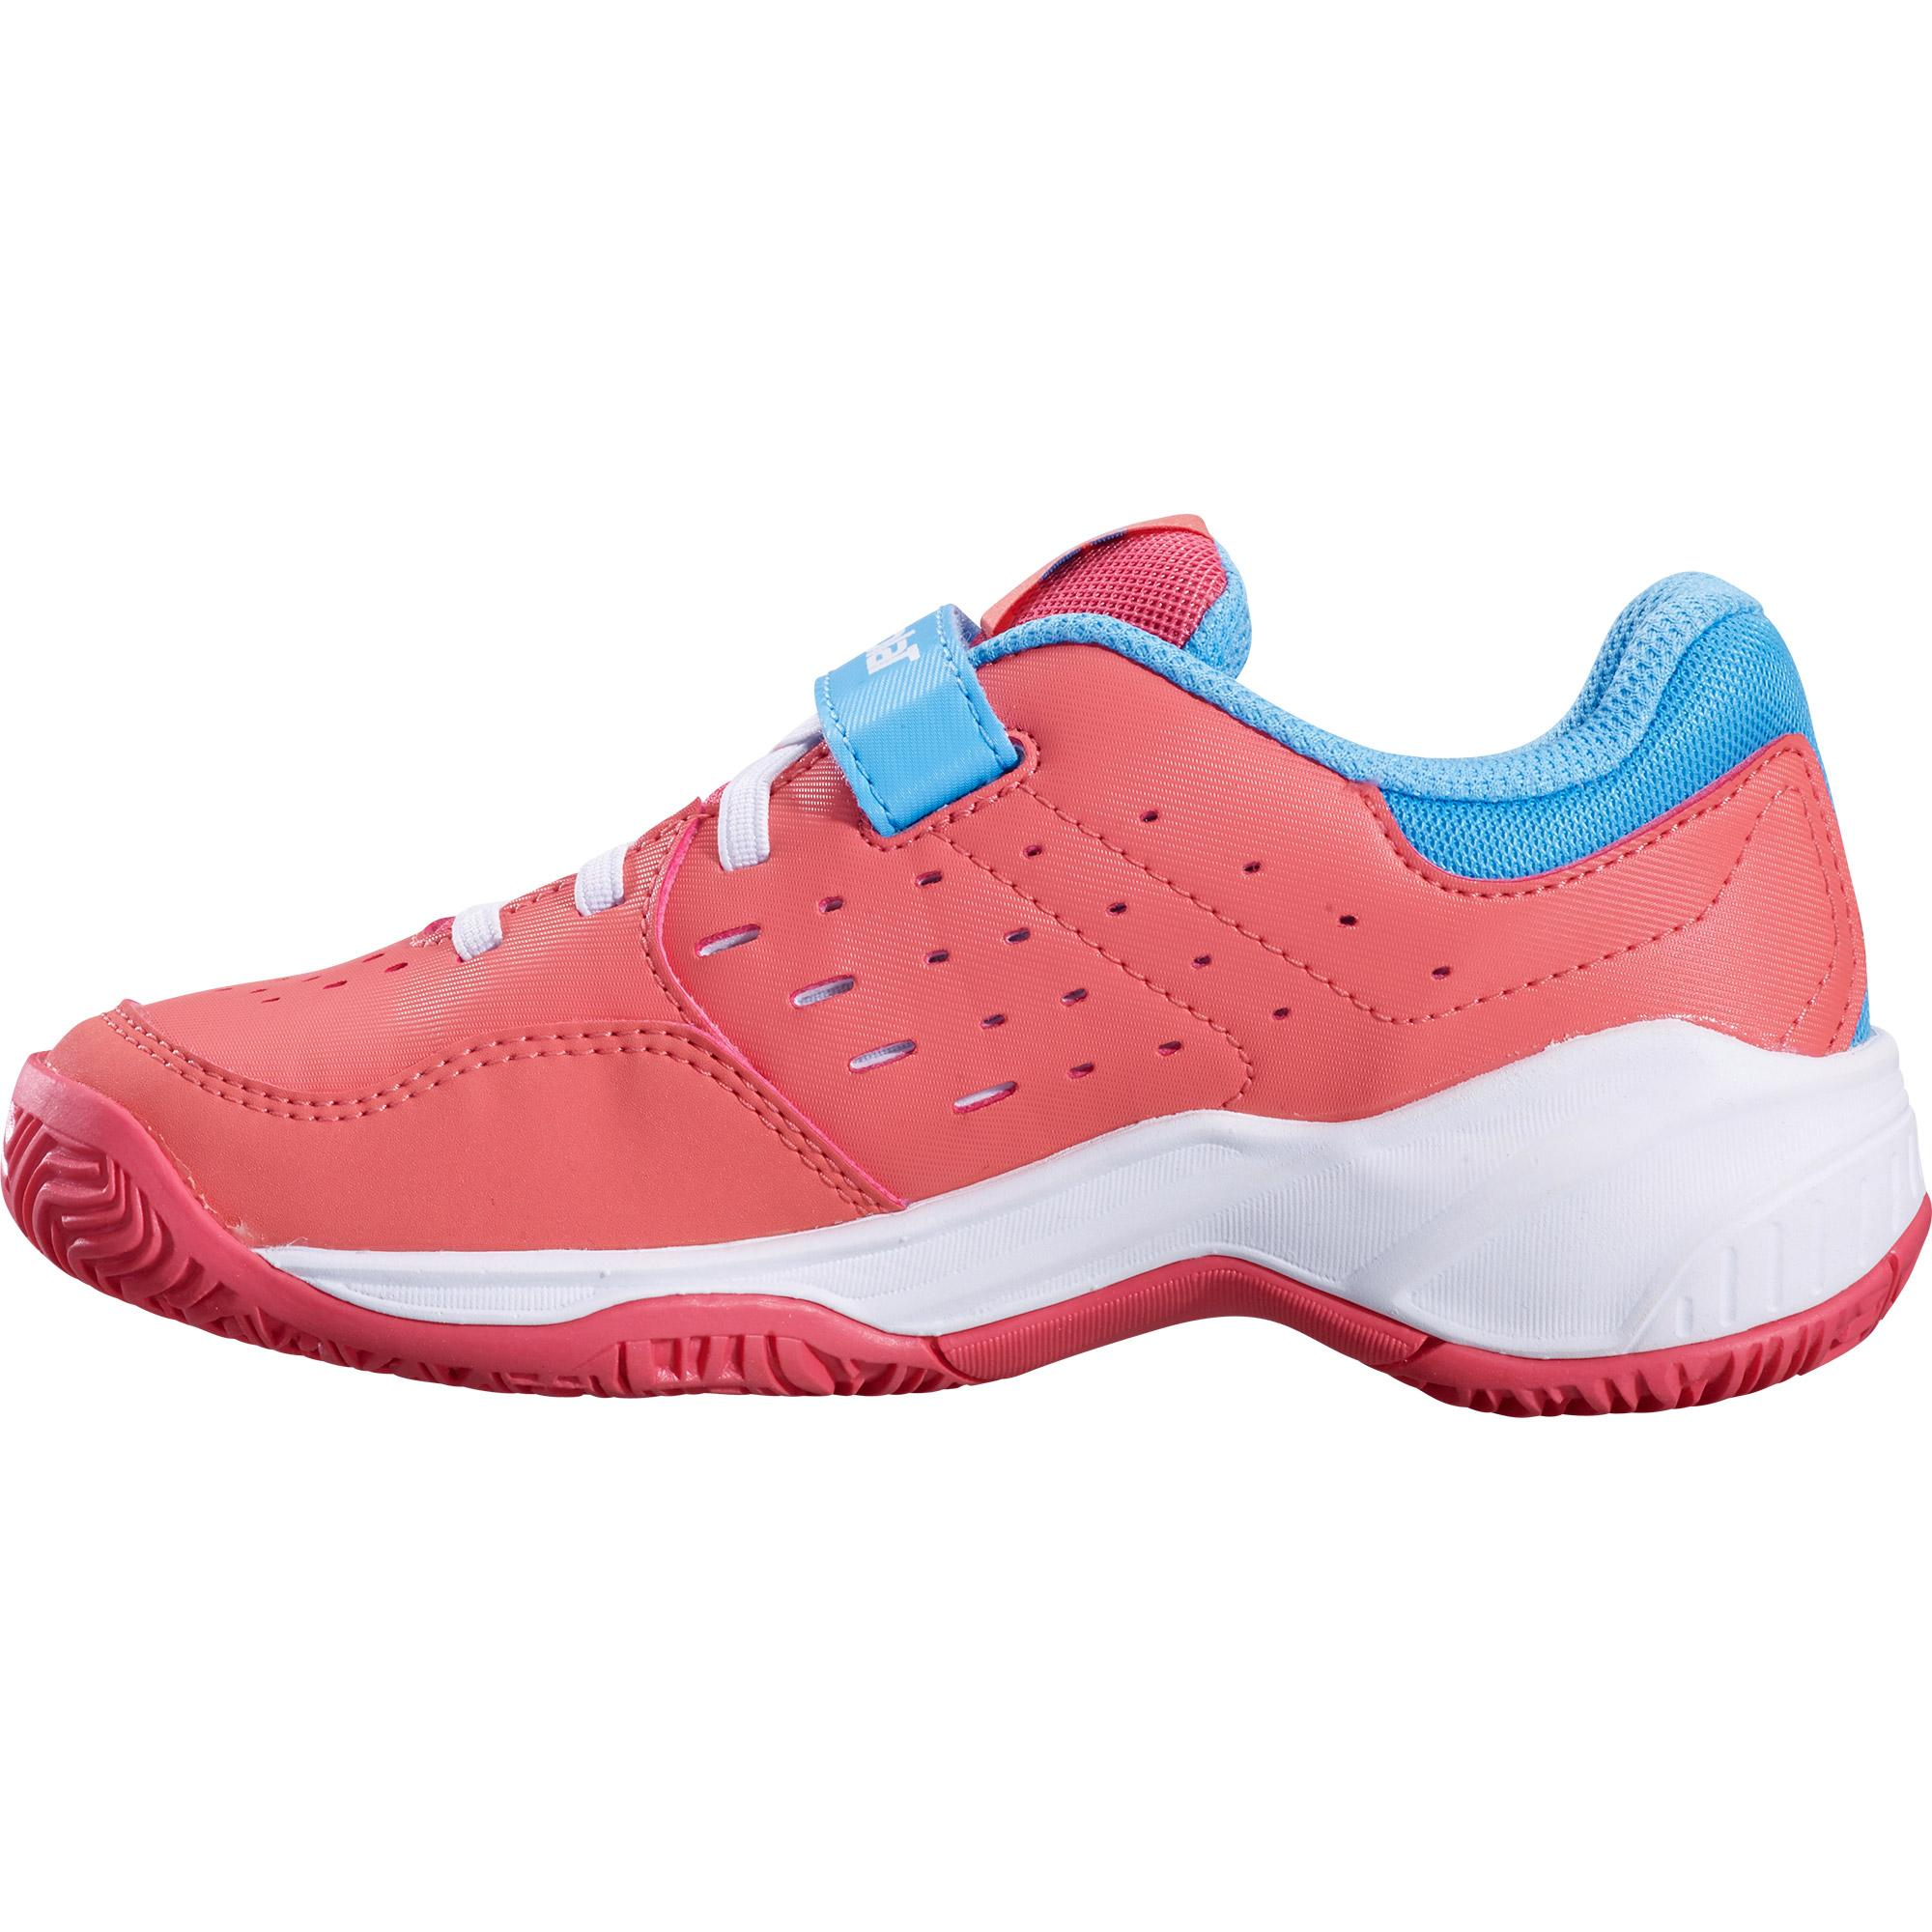 Кроссовки BABOLAT PULSION ALL COURT KID PSV  PINK/SKY BLUE 2019. Фото ¹2